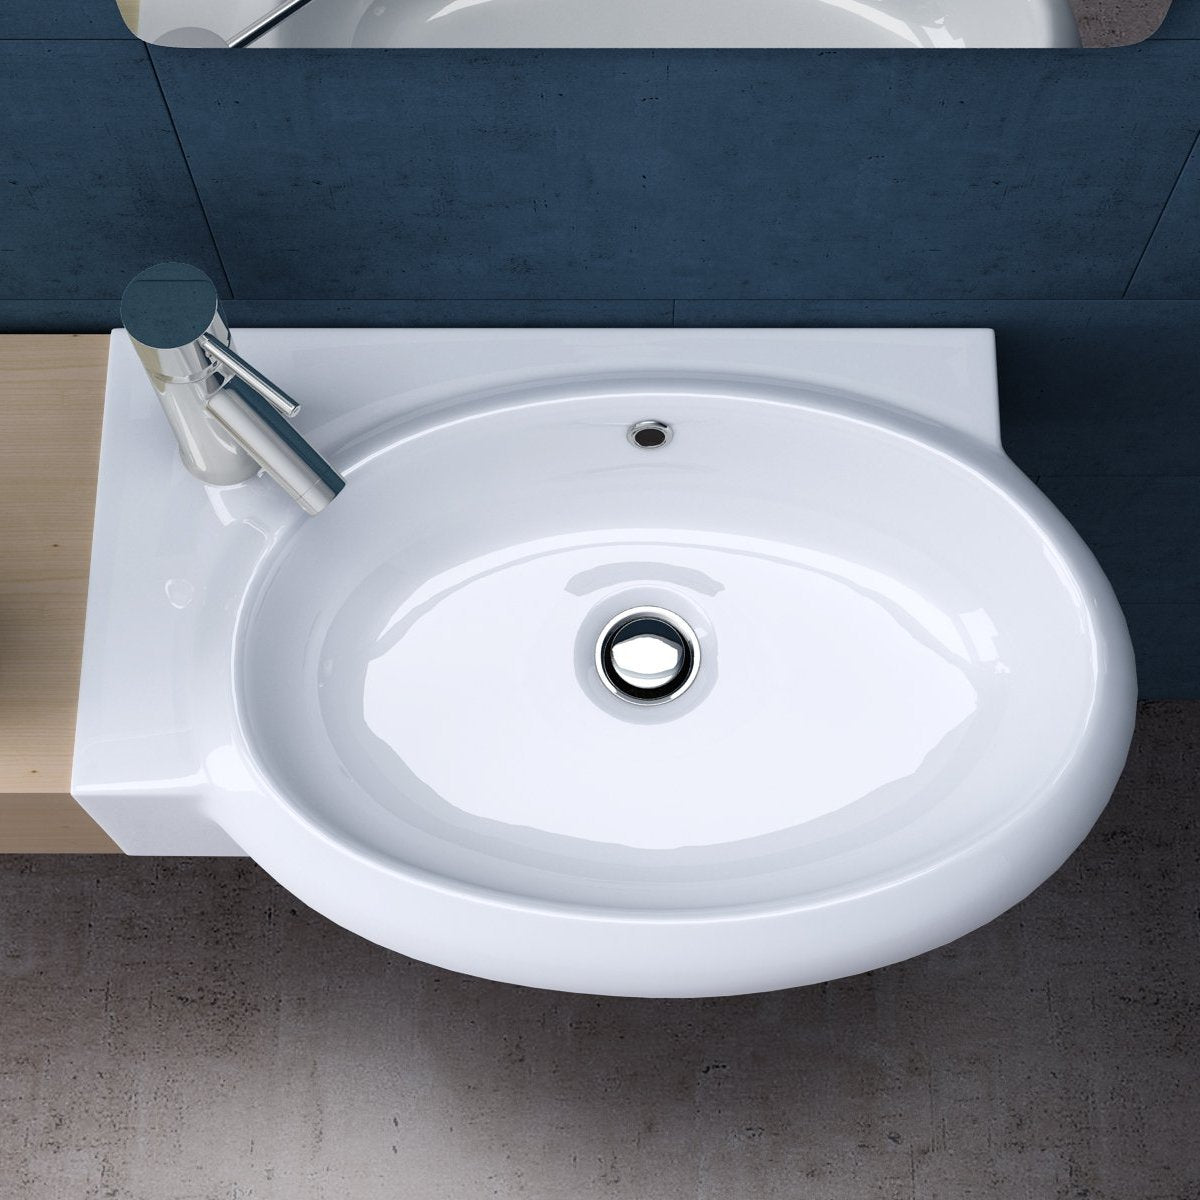 Bruessel 3052R modern ceramic white gloss basin, left tap hole.